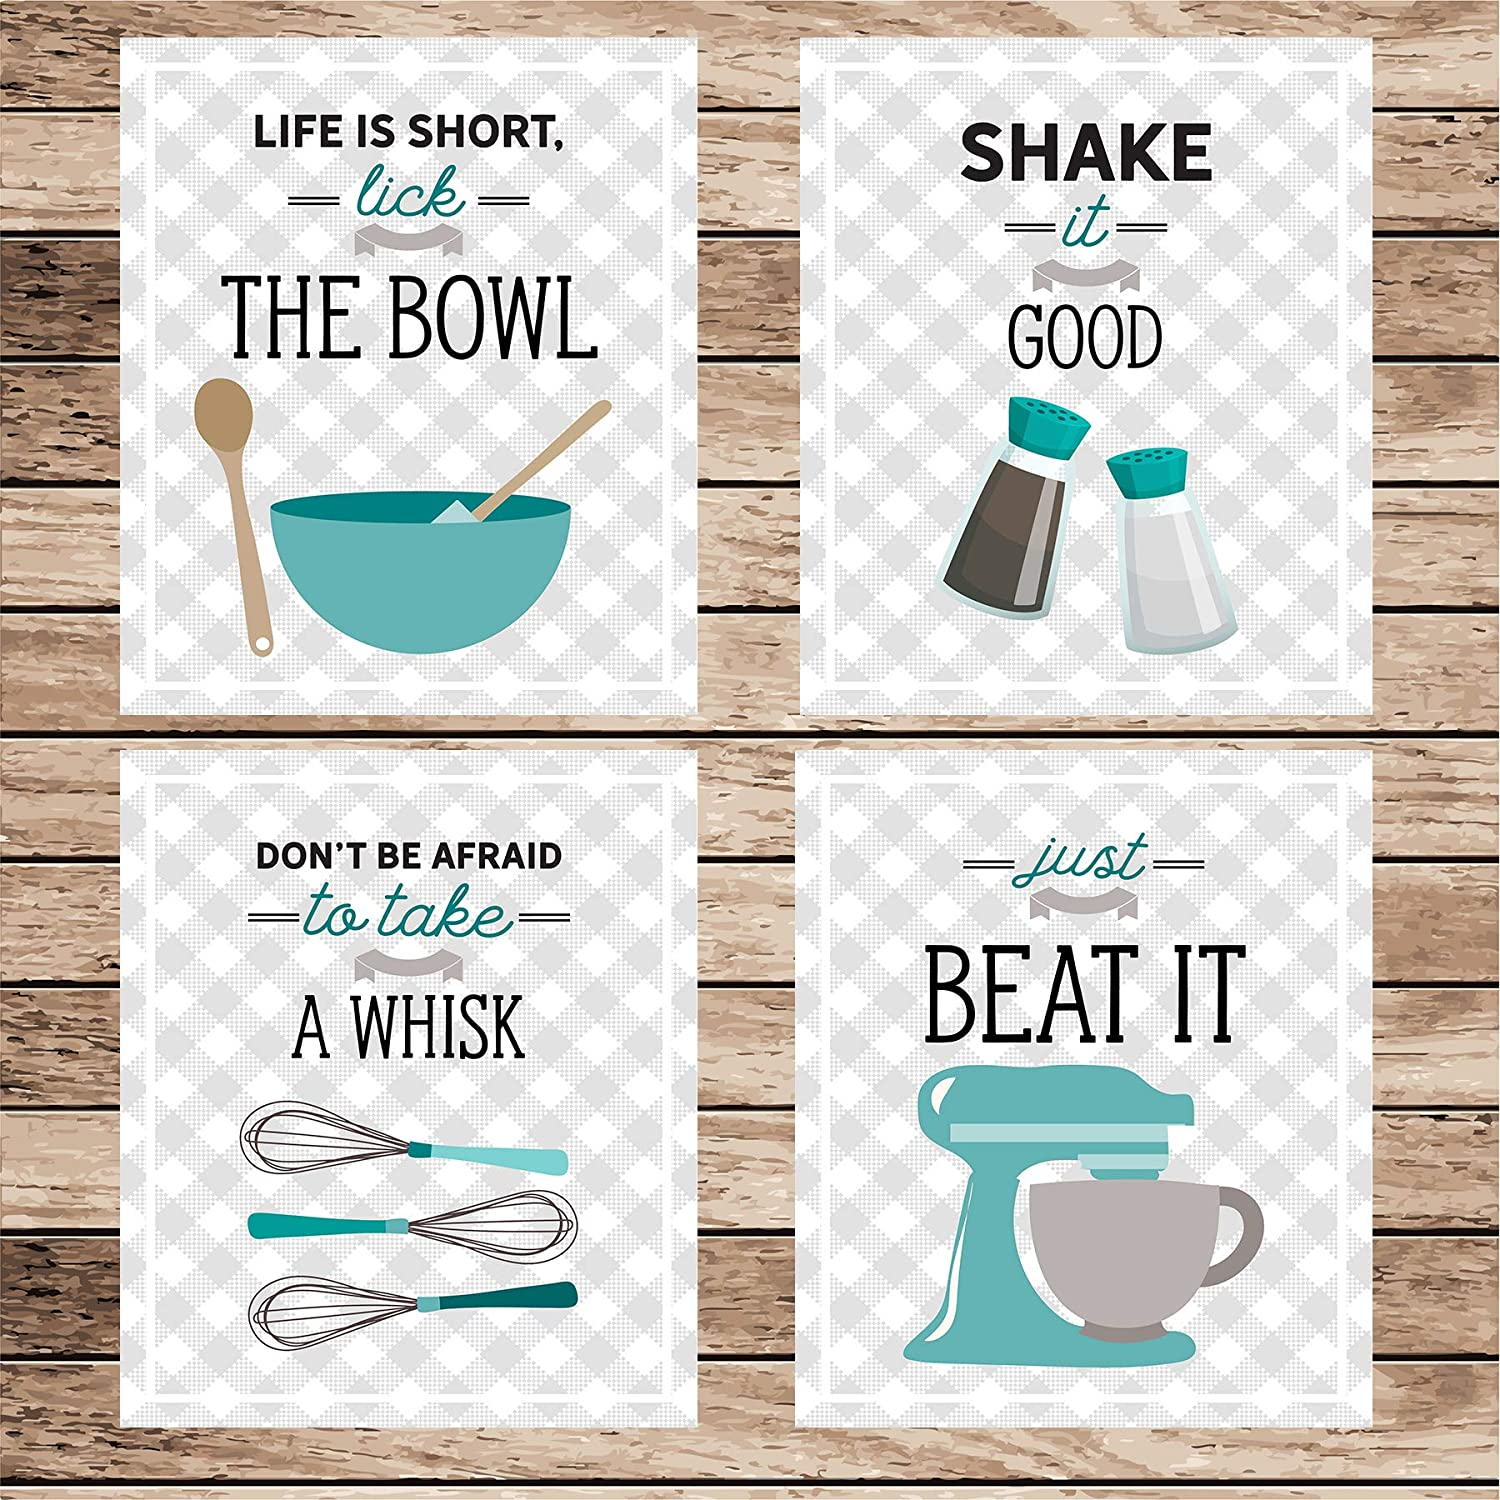 Modern Farmhouse Teal Blue Retro Vintage Kitchen Wall Art Signs Set of 4-8x10 UNFRAMED Gray Teal /& White Kitchen Utensil Prints Perfect for Rustic Mid-Century,Country Decor.